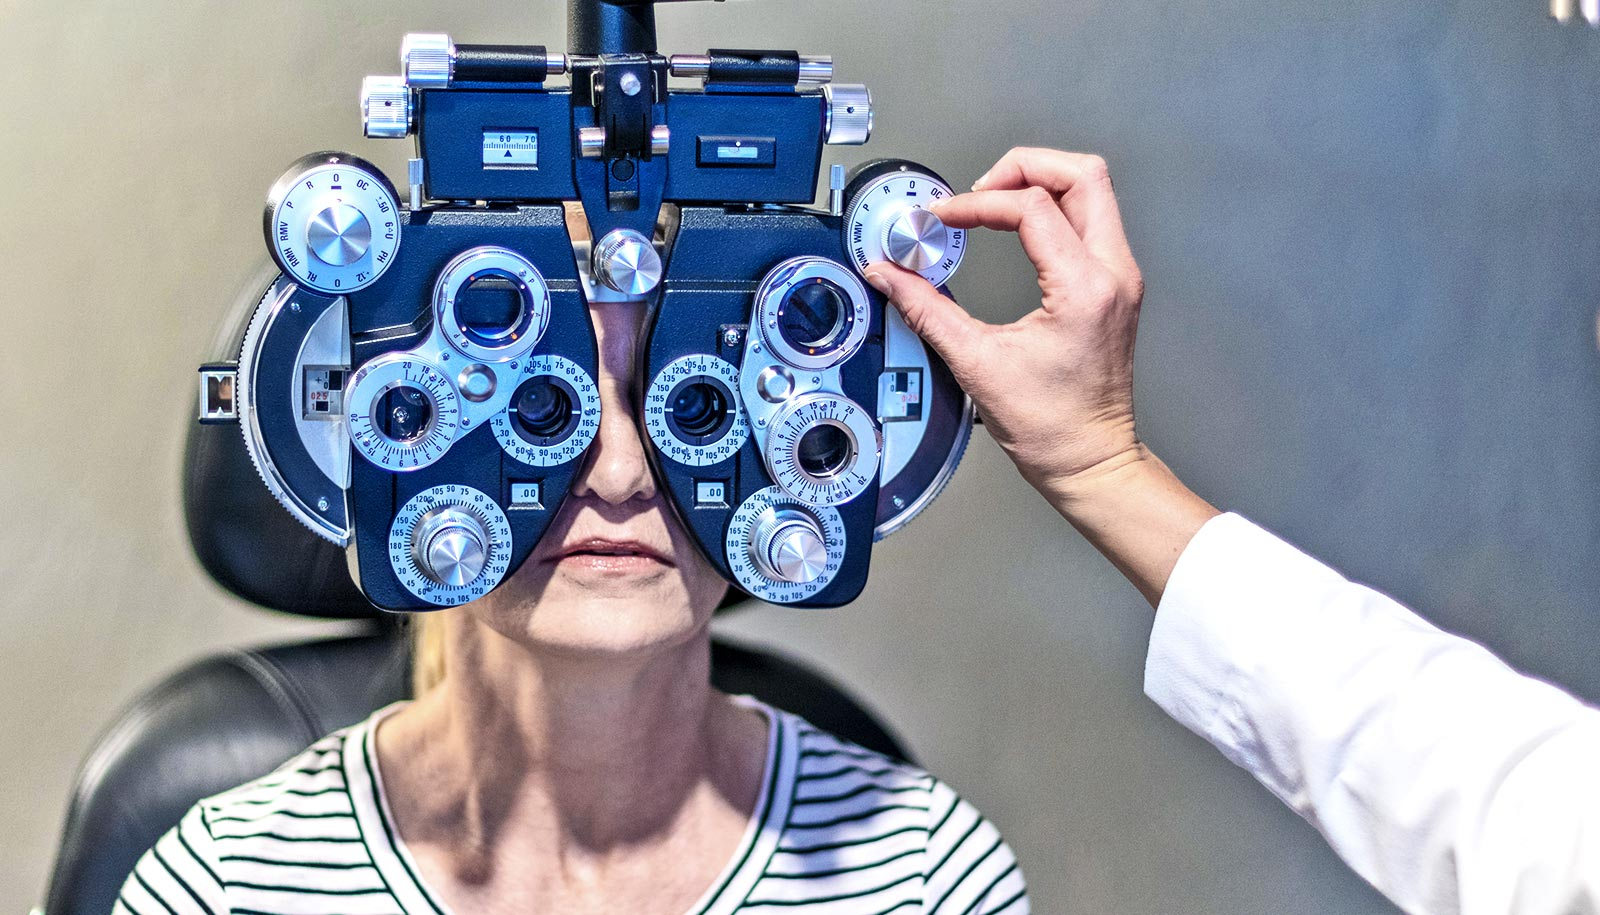 A.I. could give eye charts a personalized overhaul